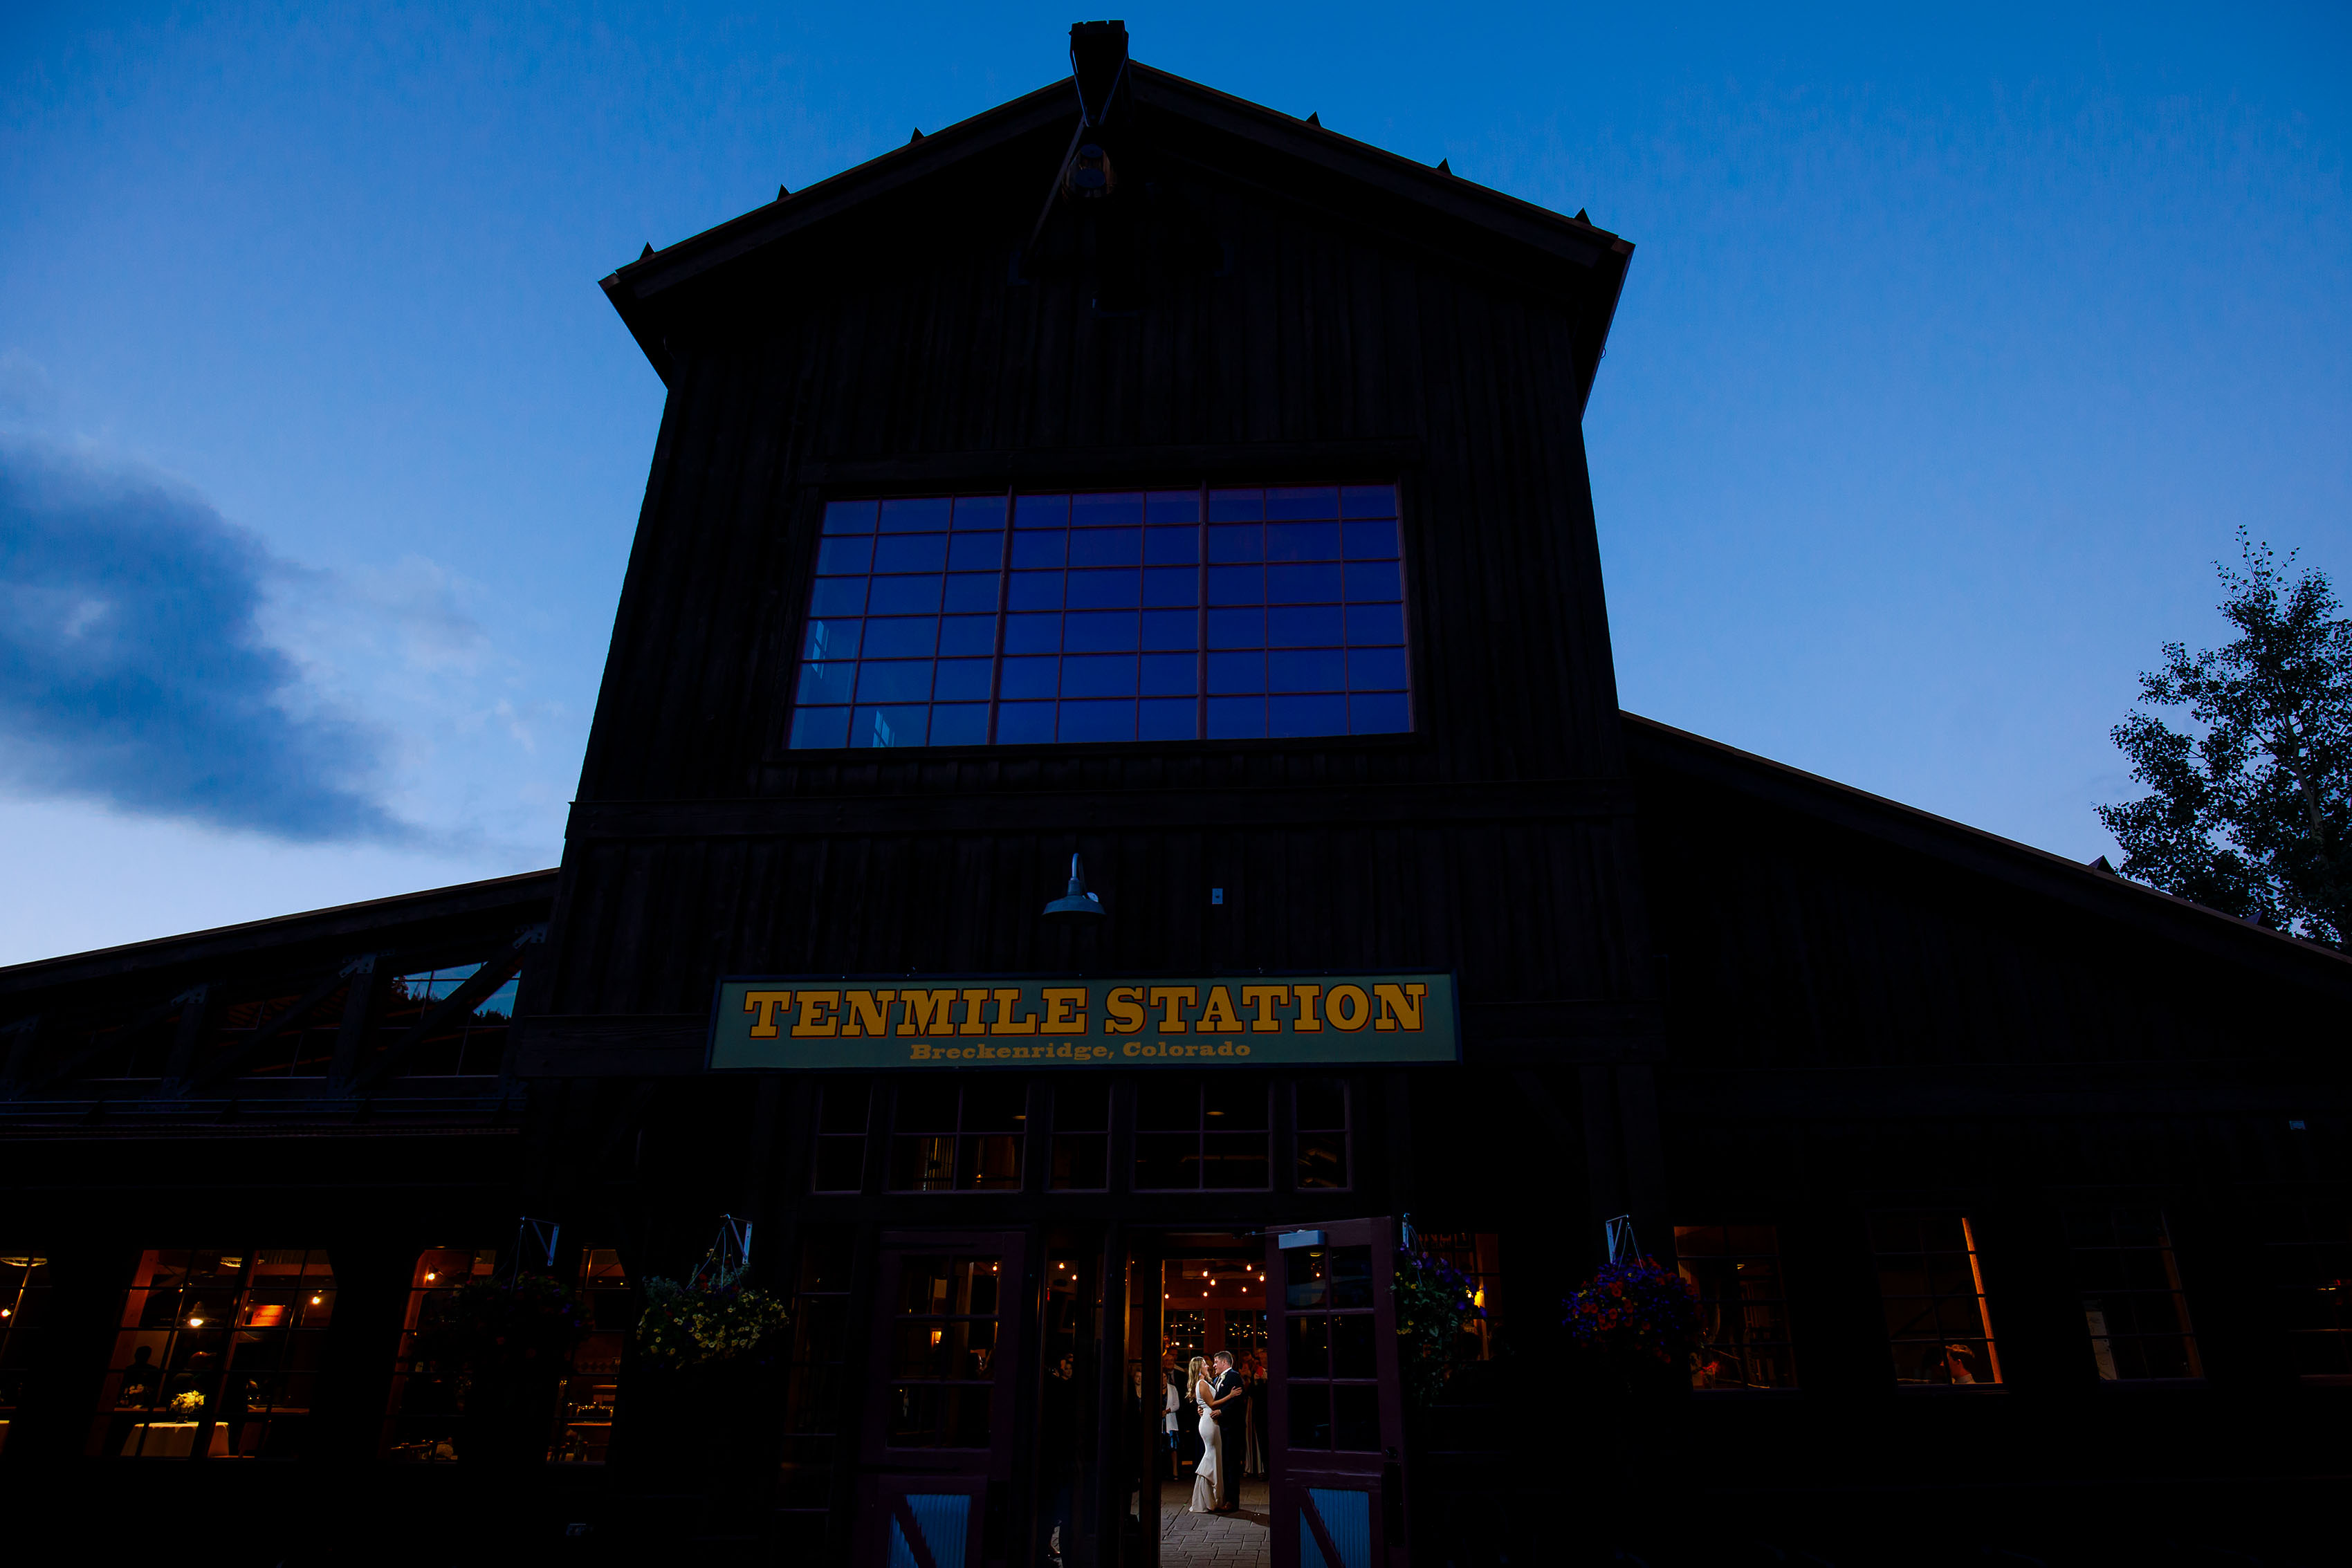 The couple share their first dance during their wedding at TenMile Station on Peak 9 in Breckenridge